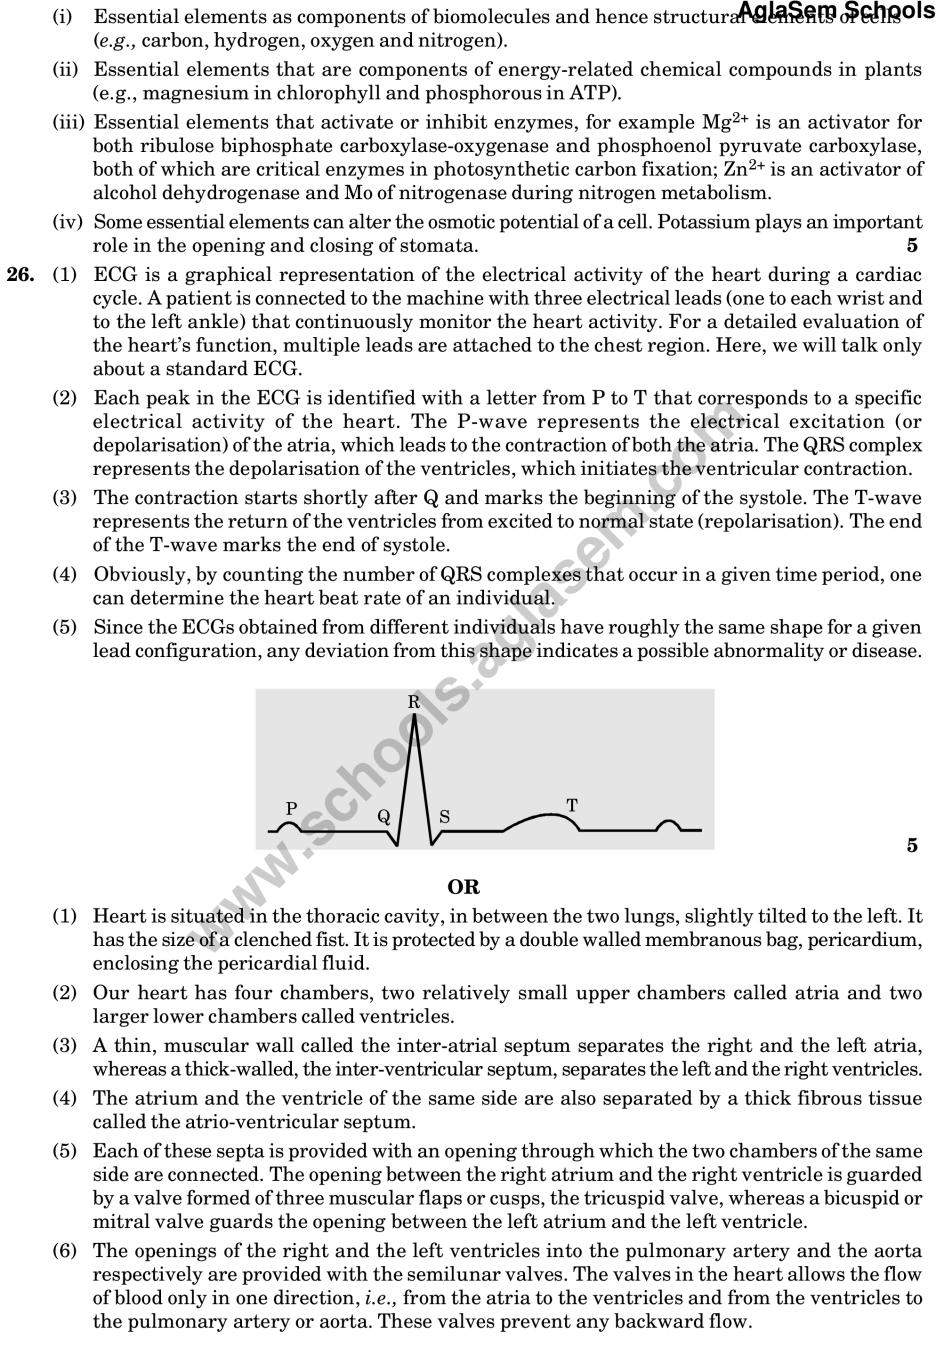 CBSE Sample for Class 11 Accountancy (Solved) - Set B